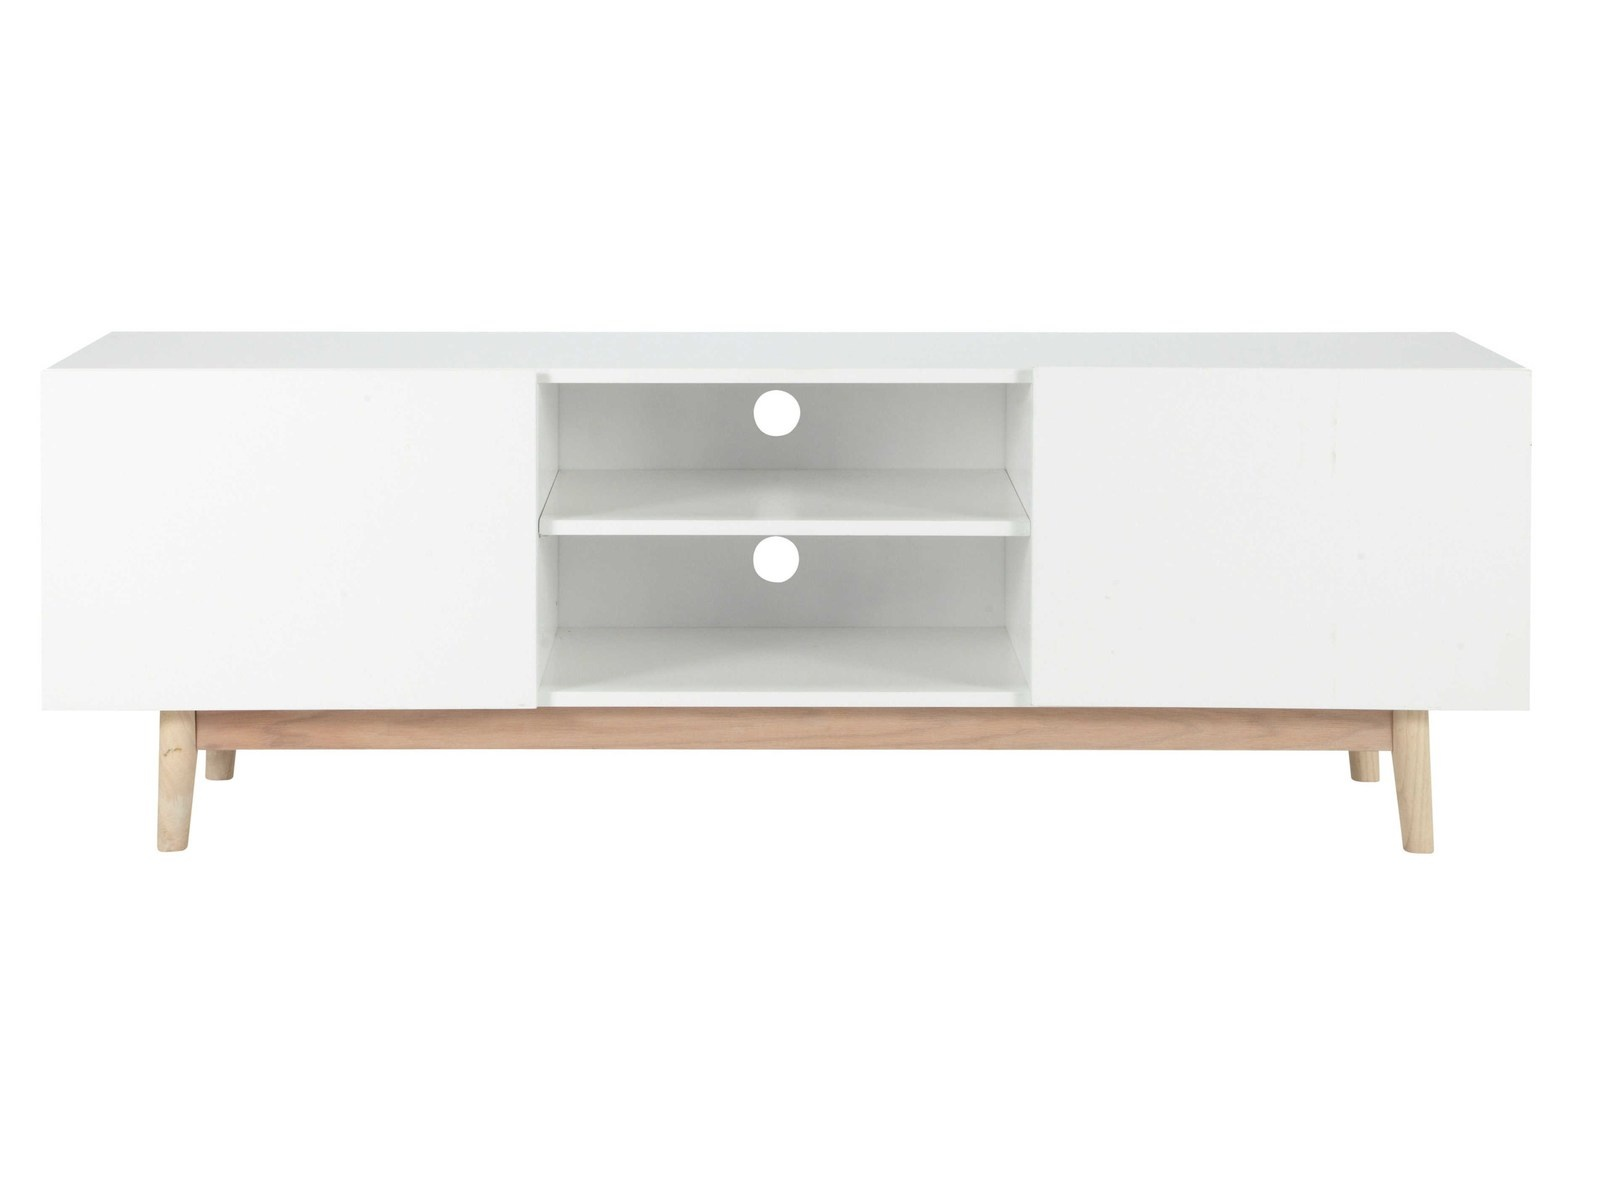 Meuble Tv Scandinave Ikea Sellingstg Com # Magasin De Meuble Tv